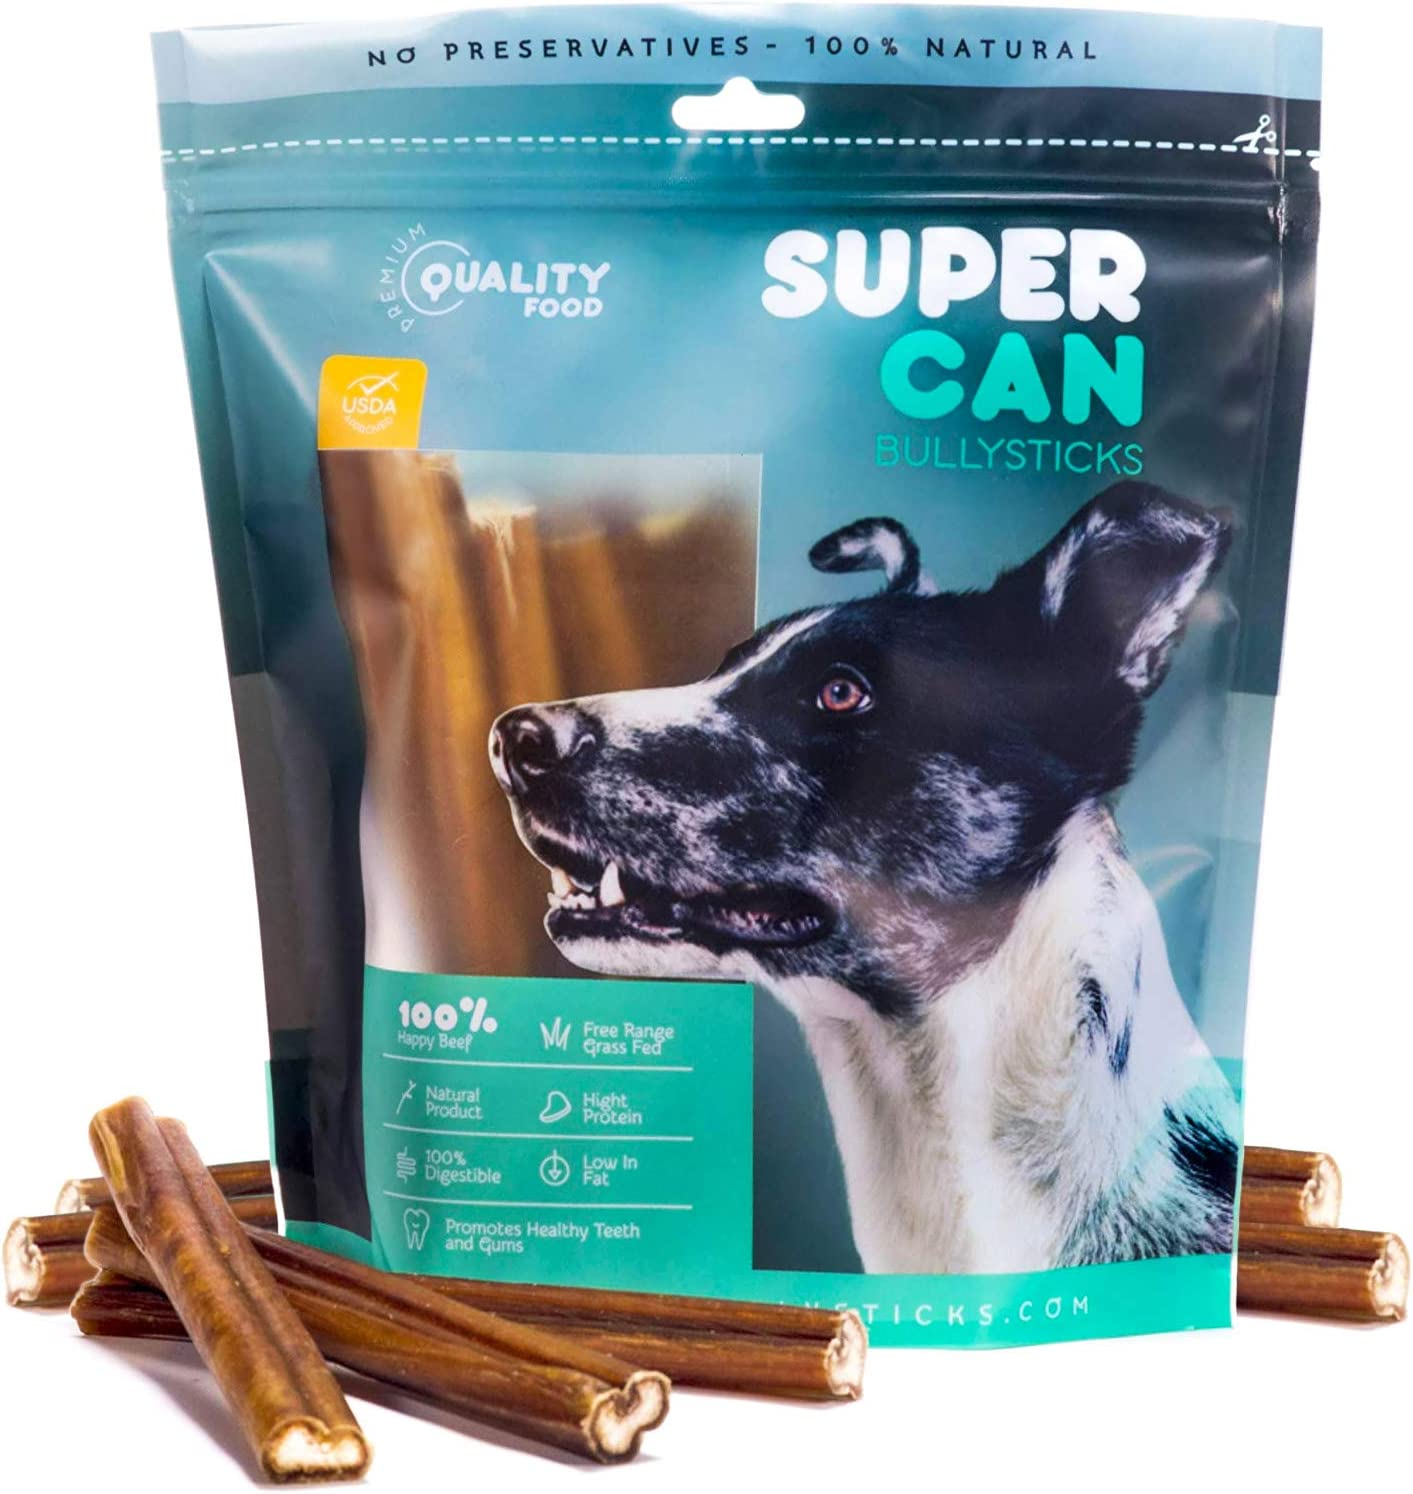 SUPER CAN BULLYSTICKS – Bully Sticks for Dogs 100 Natural and Healthy Dog Treats – High Protein, Naturally Scented Chews – 6 Inch Premium Free Range Grass Fed Beef Stick